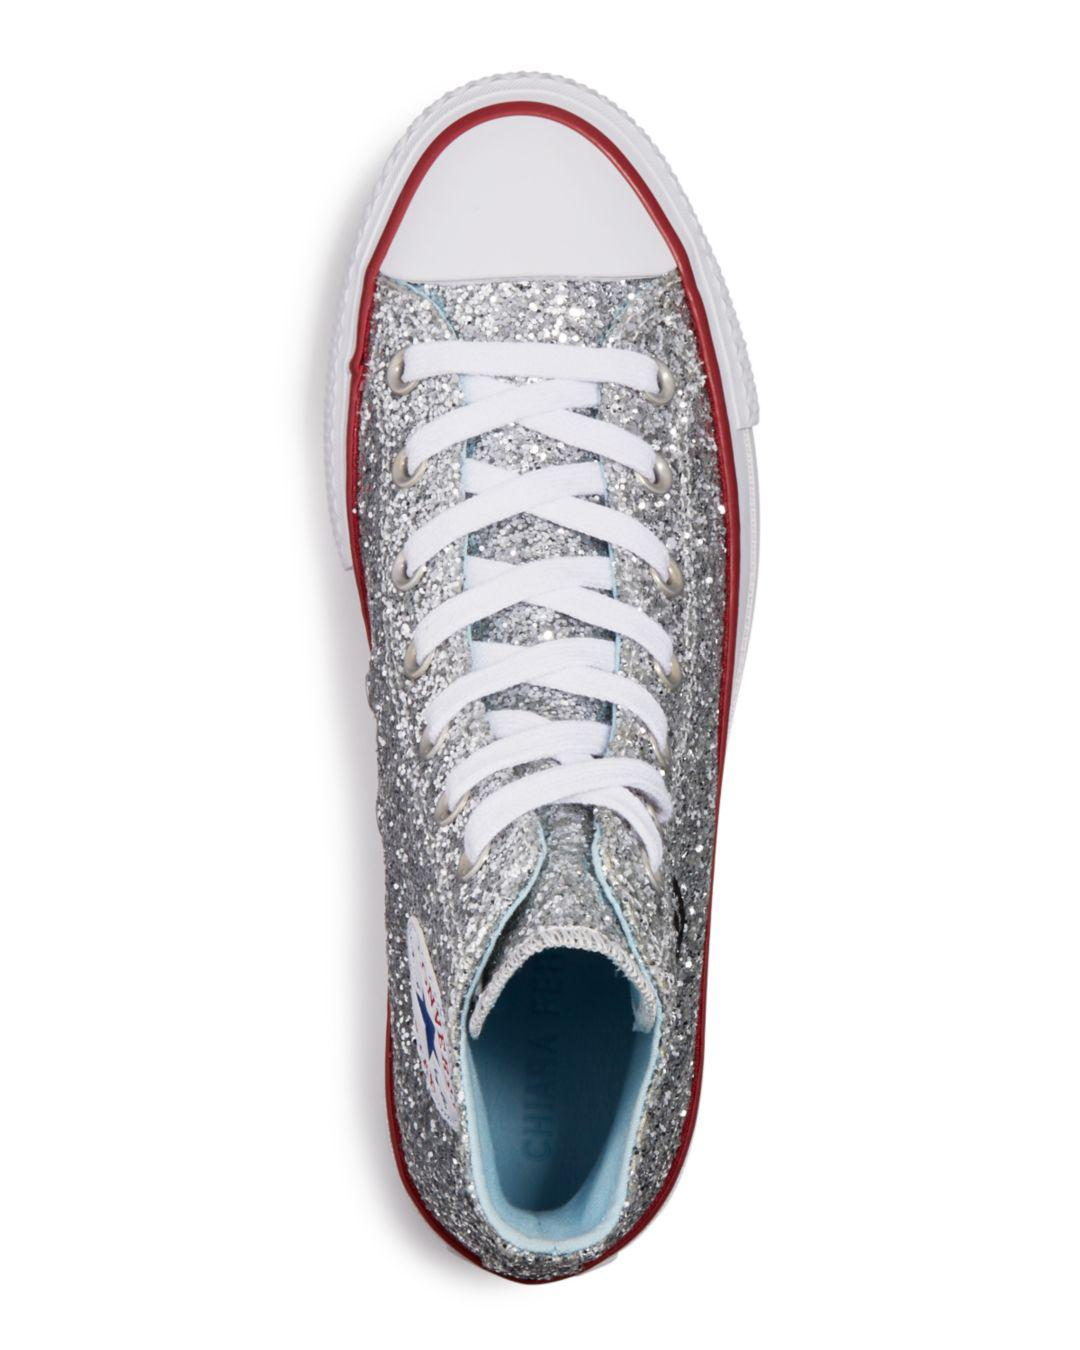 f3a55829d50120 Converse X Chiara Ferragni Women s Chuck Taylor Glitter High Top Sneakers  in Metallic - Save 5% - Lyst